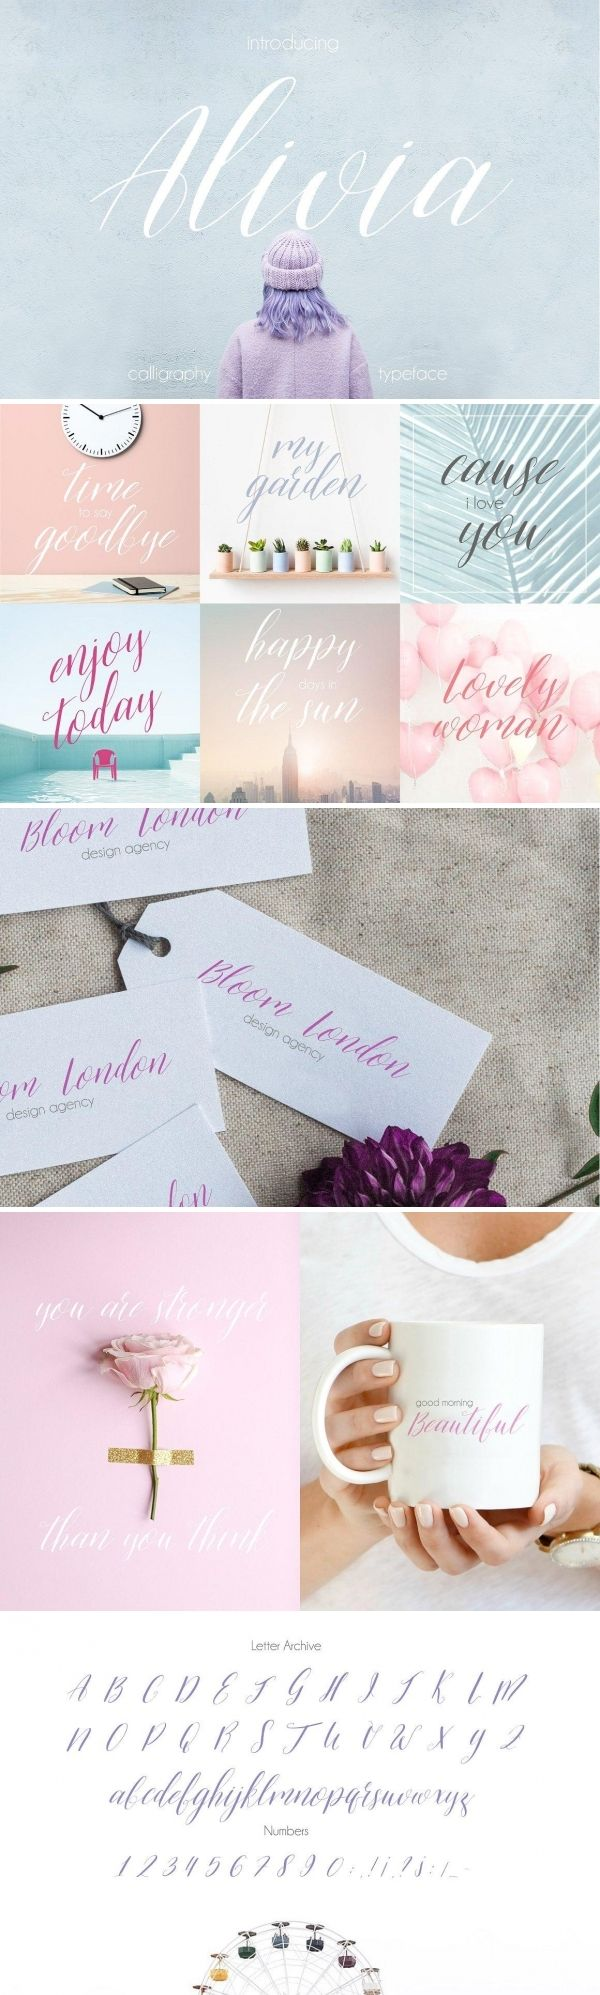 Alivia Handlettered Modern Script Font | This font are perfect for your blog or postcard for wedding. Also with their help, you can create a logo or beautiful frame for your home. Or just use for your small business, book covers, stationery, marketing, magazines.            #font #typeface #typegang #typespire #typematters #type #fontdesign #typography #graphicdesign #typographyinspire #handmadefont #creativemarket #ad